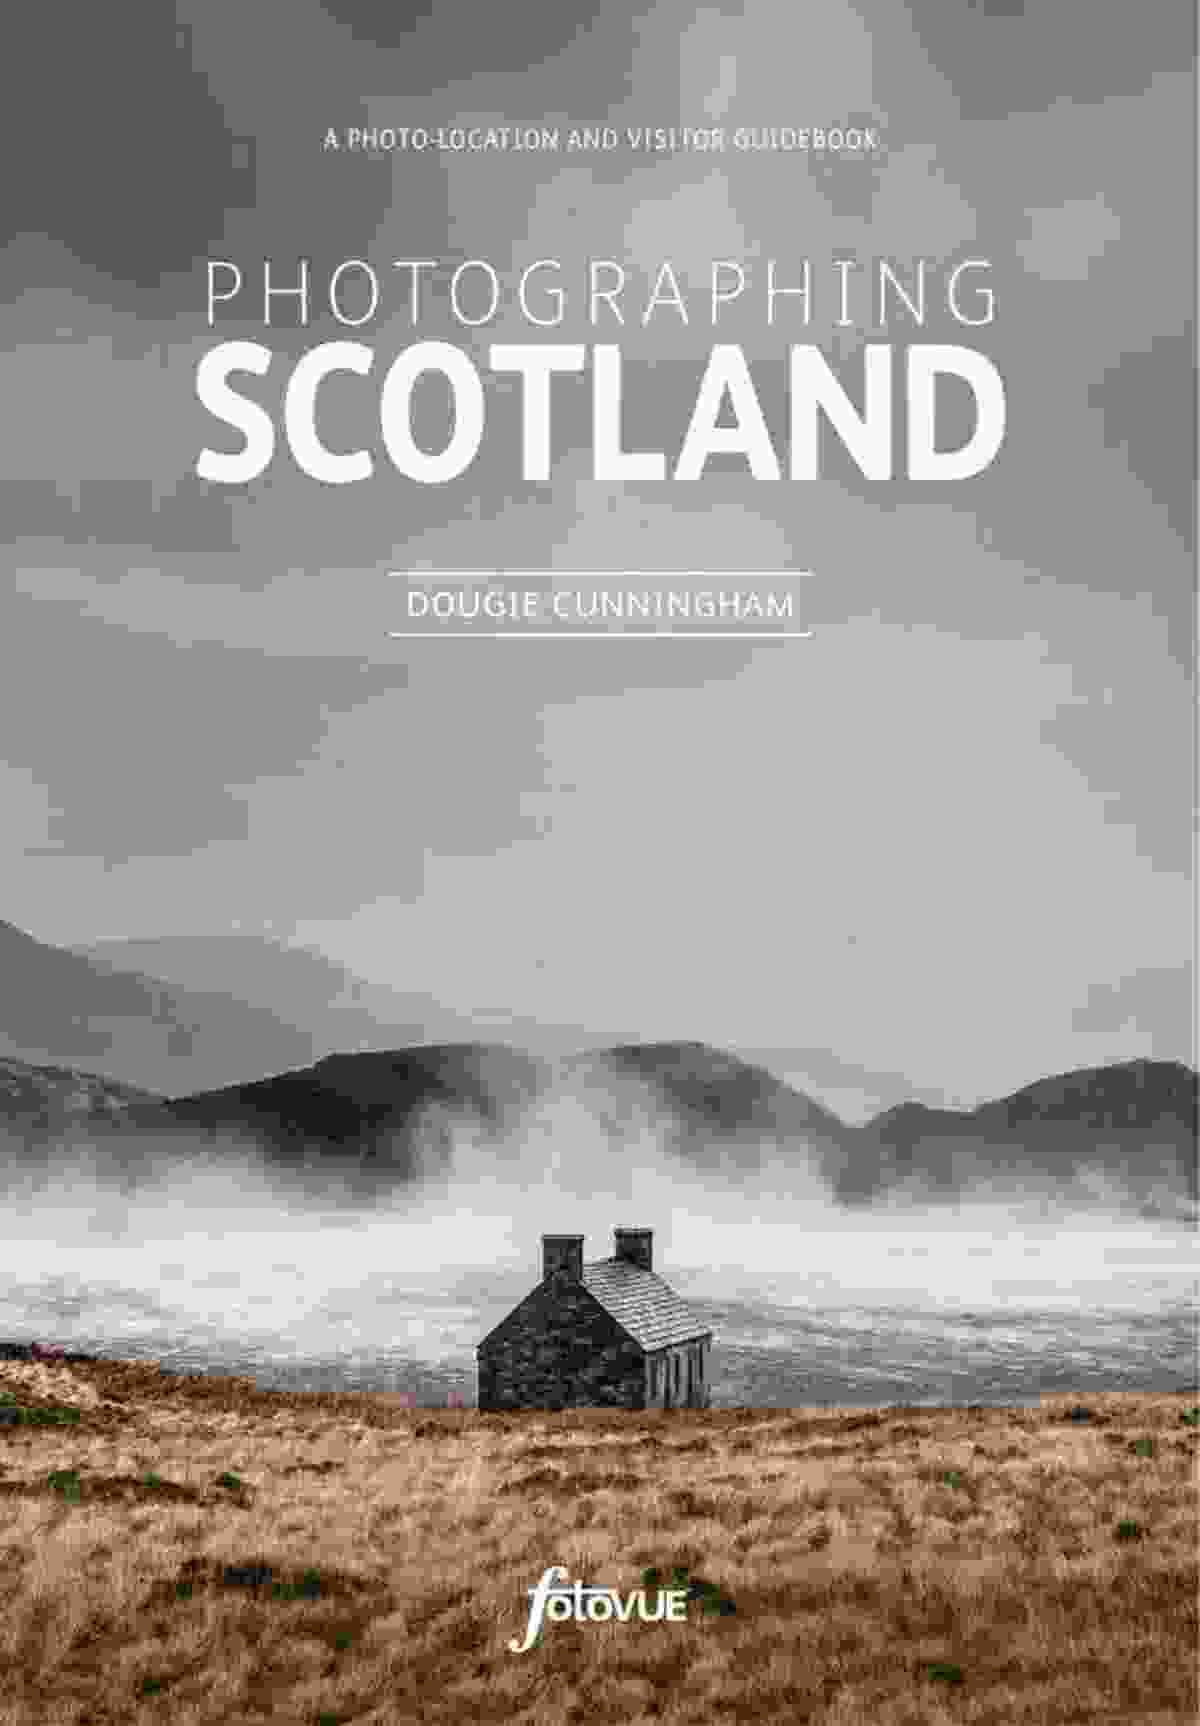 Photographing Scotland (Dougie Cunningham)